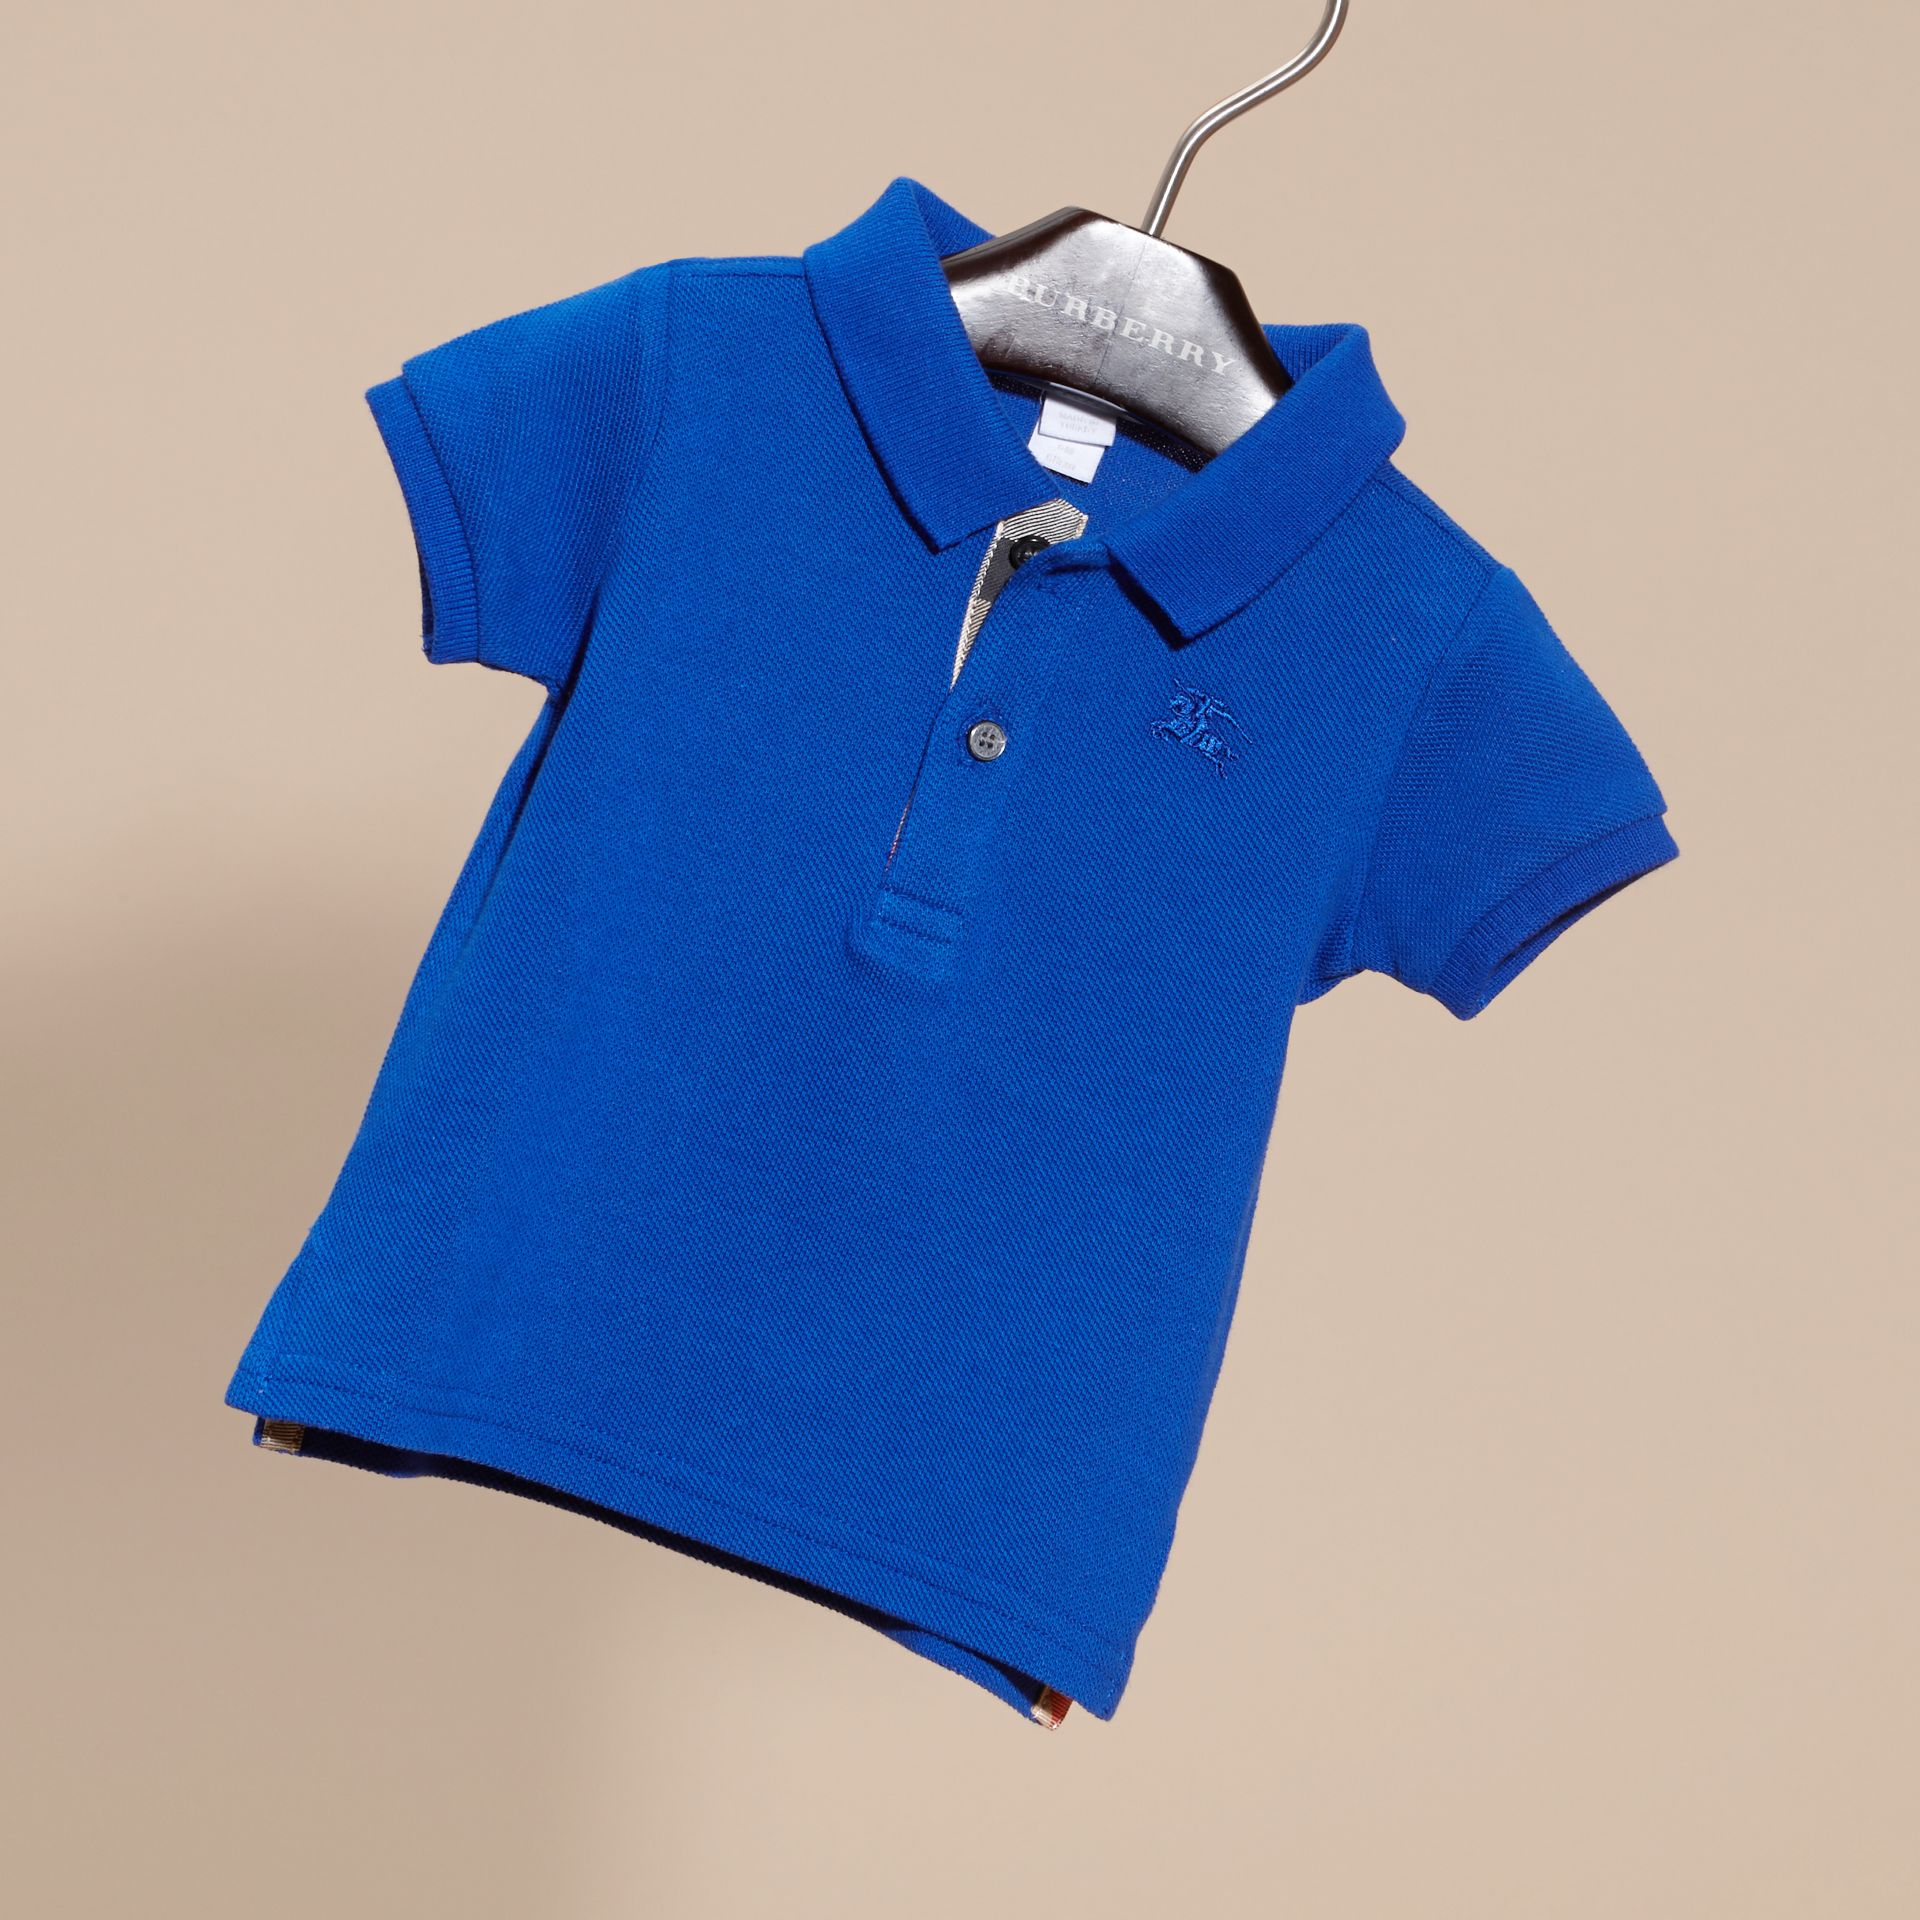 Cotton Piqué Polo Shirt Brilliant Blue - gallery image 3